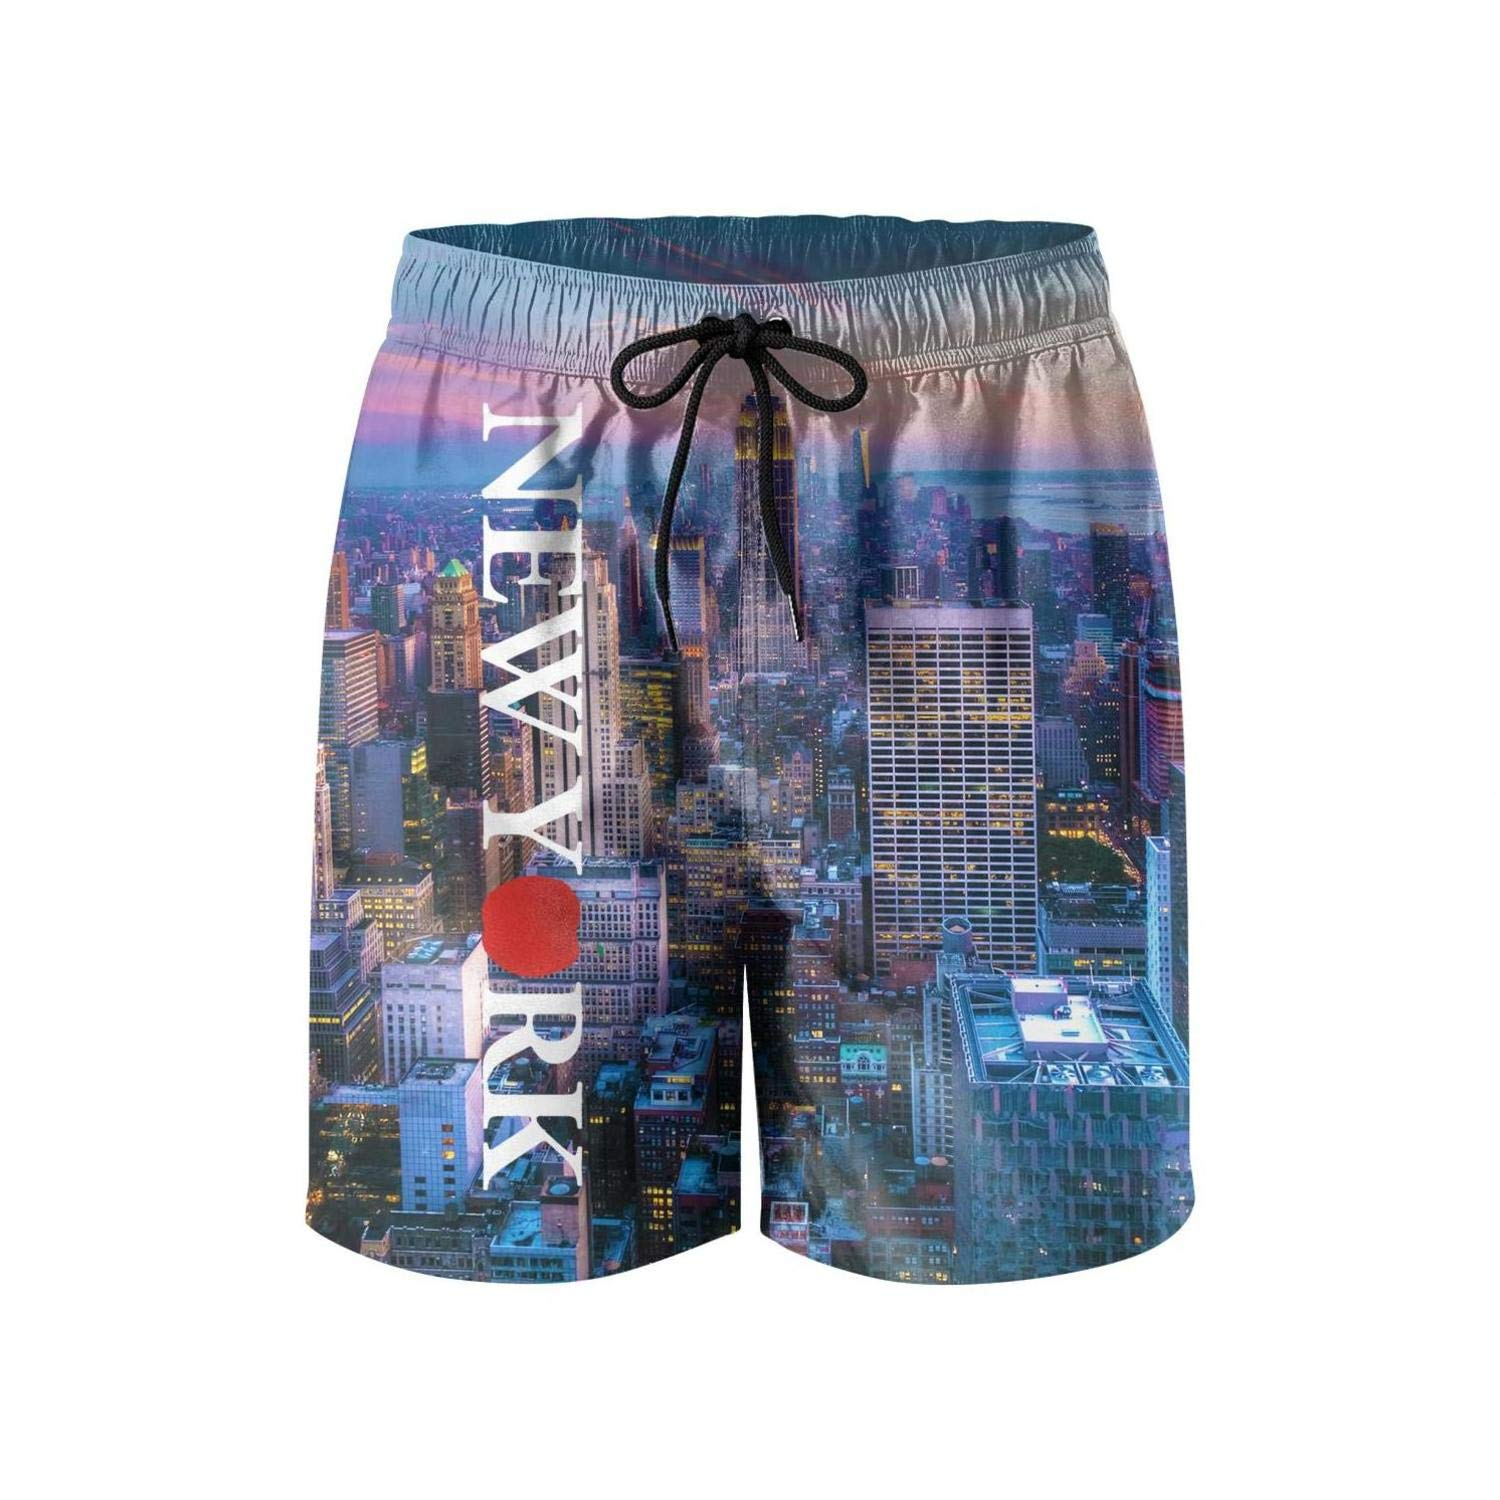 New York Love Heart Mens Guys Shorts Summer Fashion Beach Shorts Swim